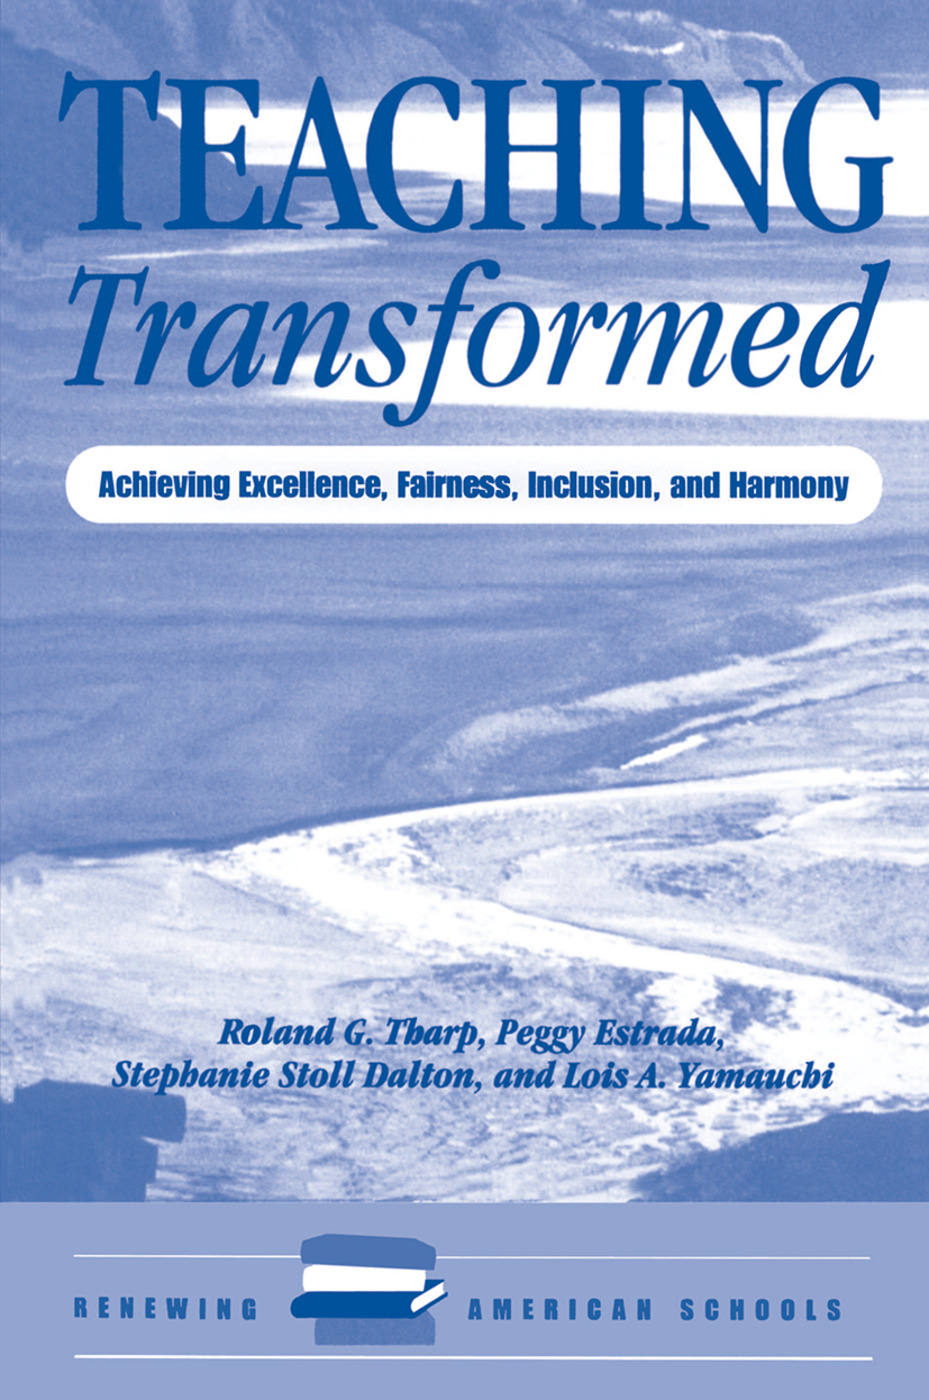 Teaching Transformed: Achieving Excellence, Fairness, Inclusion, And Harmony book cover